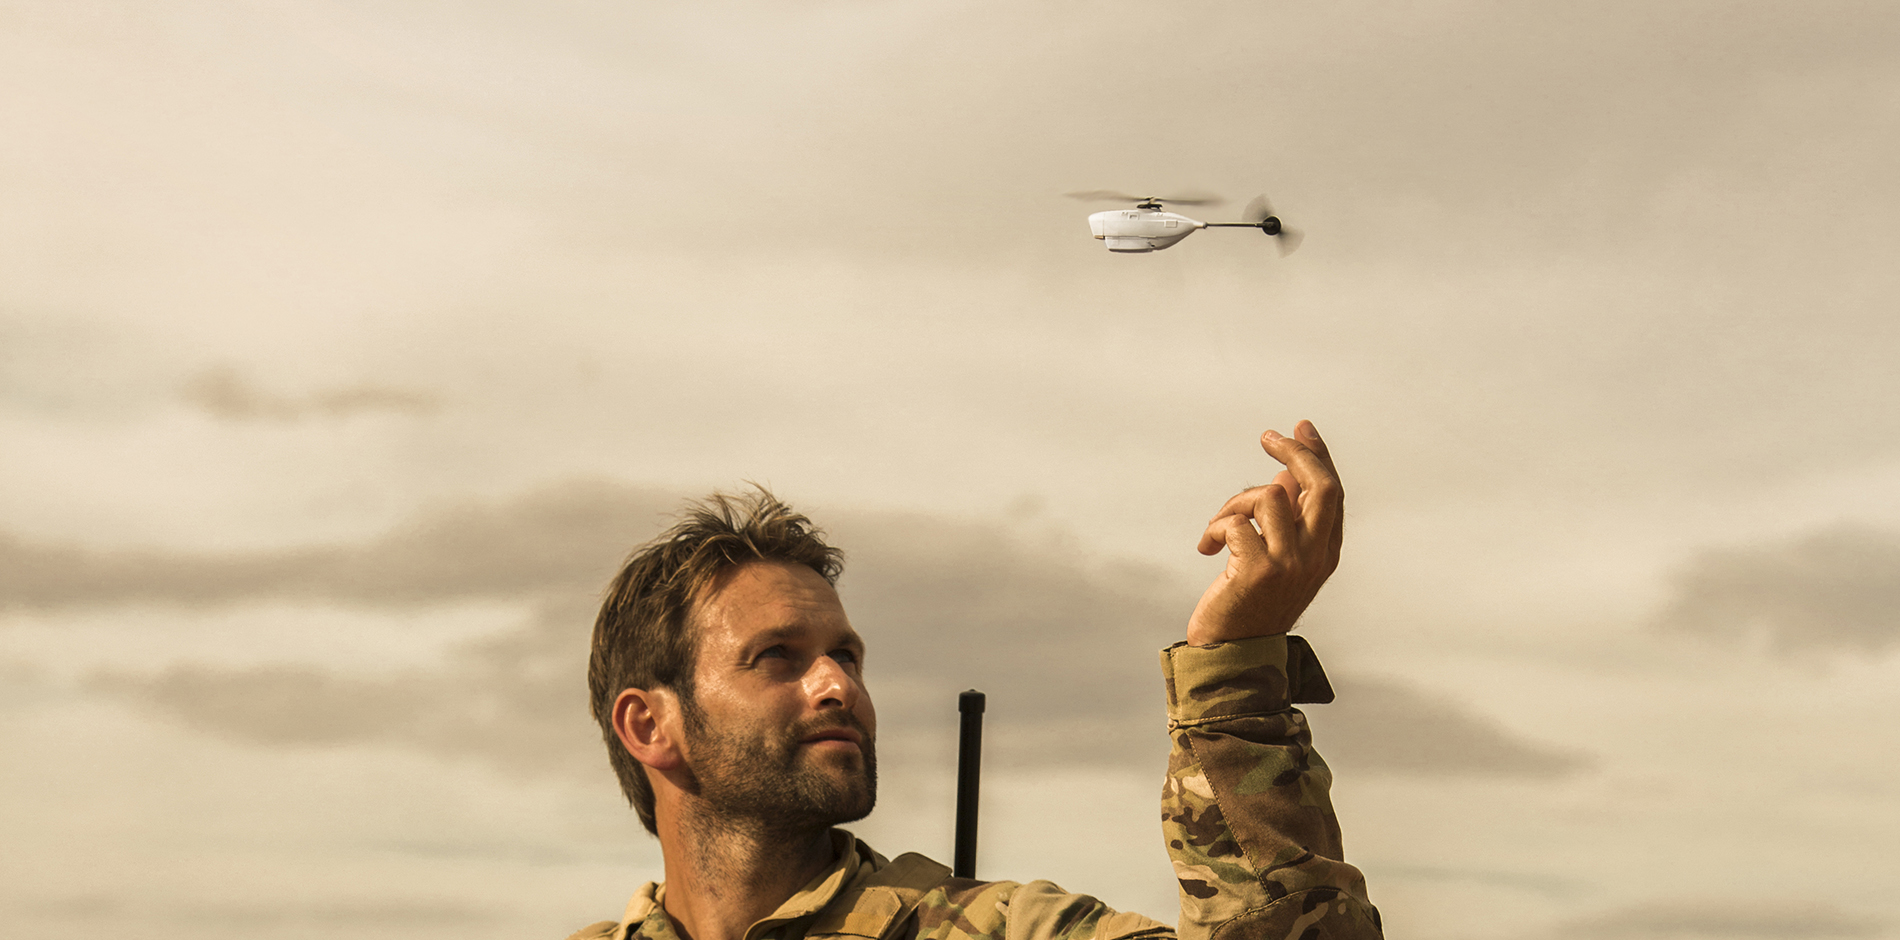 A Closer Look at the Pocket-Sized Black Hornet Drone Used by the Military